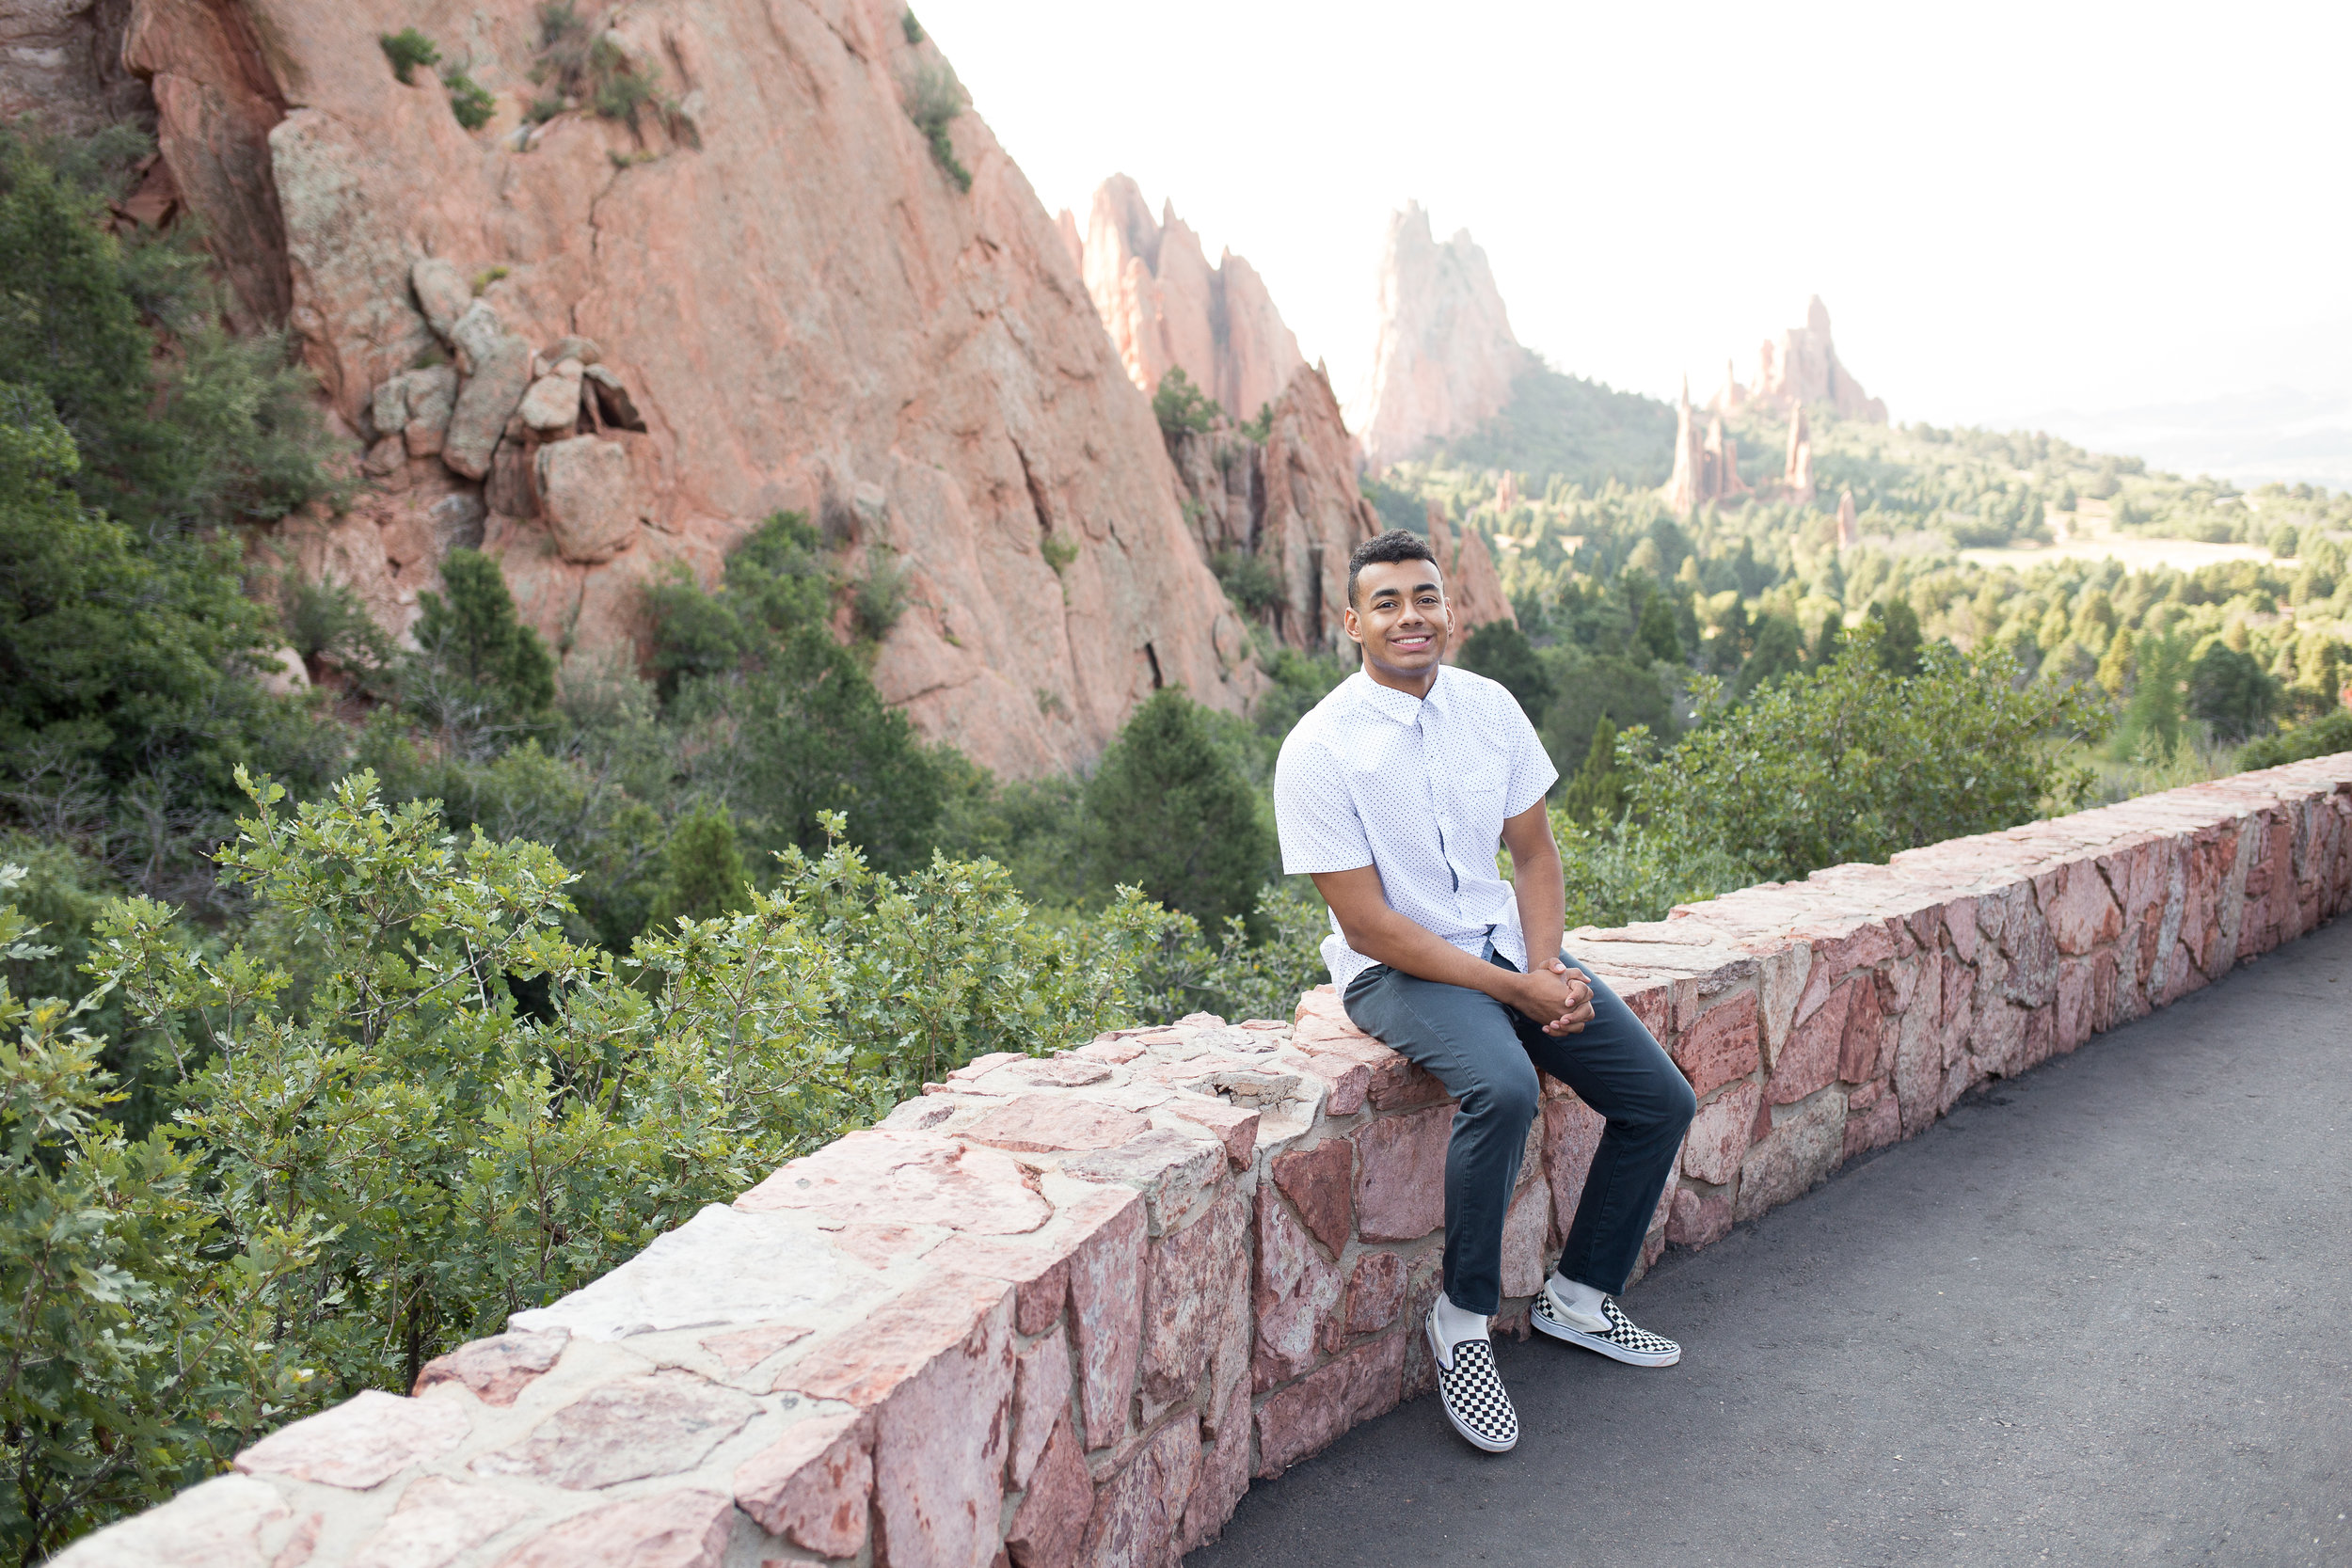 Liberty High School  Senior sitting on rock wall in front of scenic Garden of the Gods,  Stacy Carosa Photography, Colorado  Springs seniors